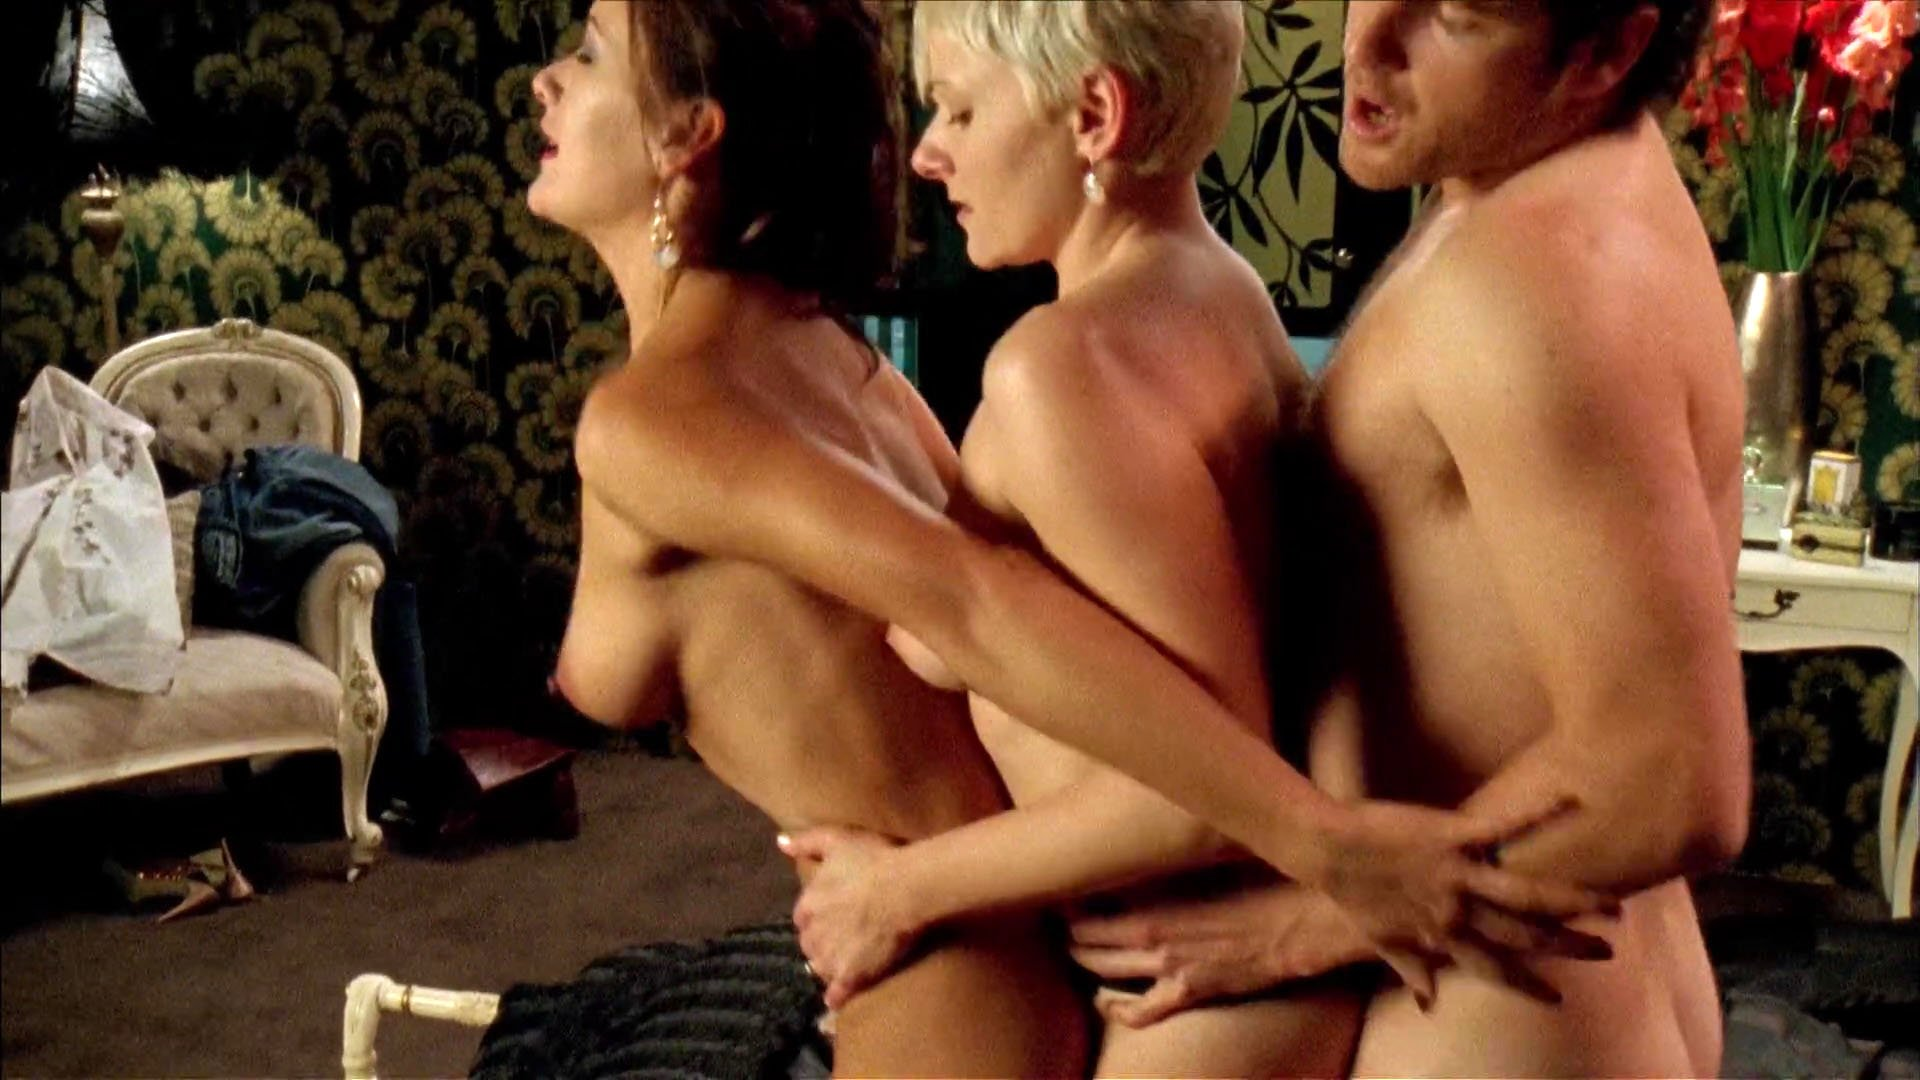 Peta Sergeant nude - Satisfaction s02e02-06 (2009)